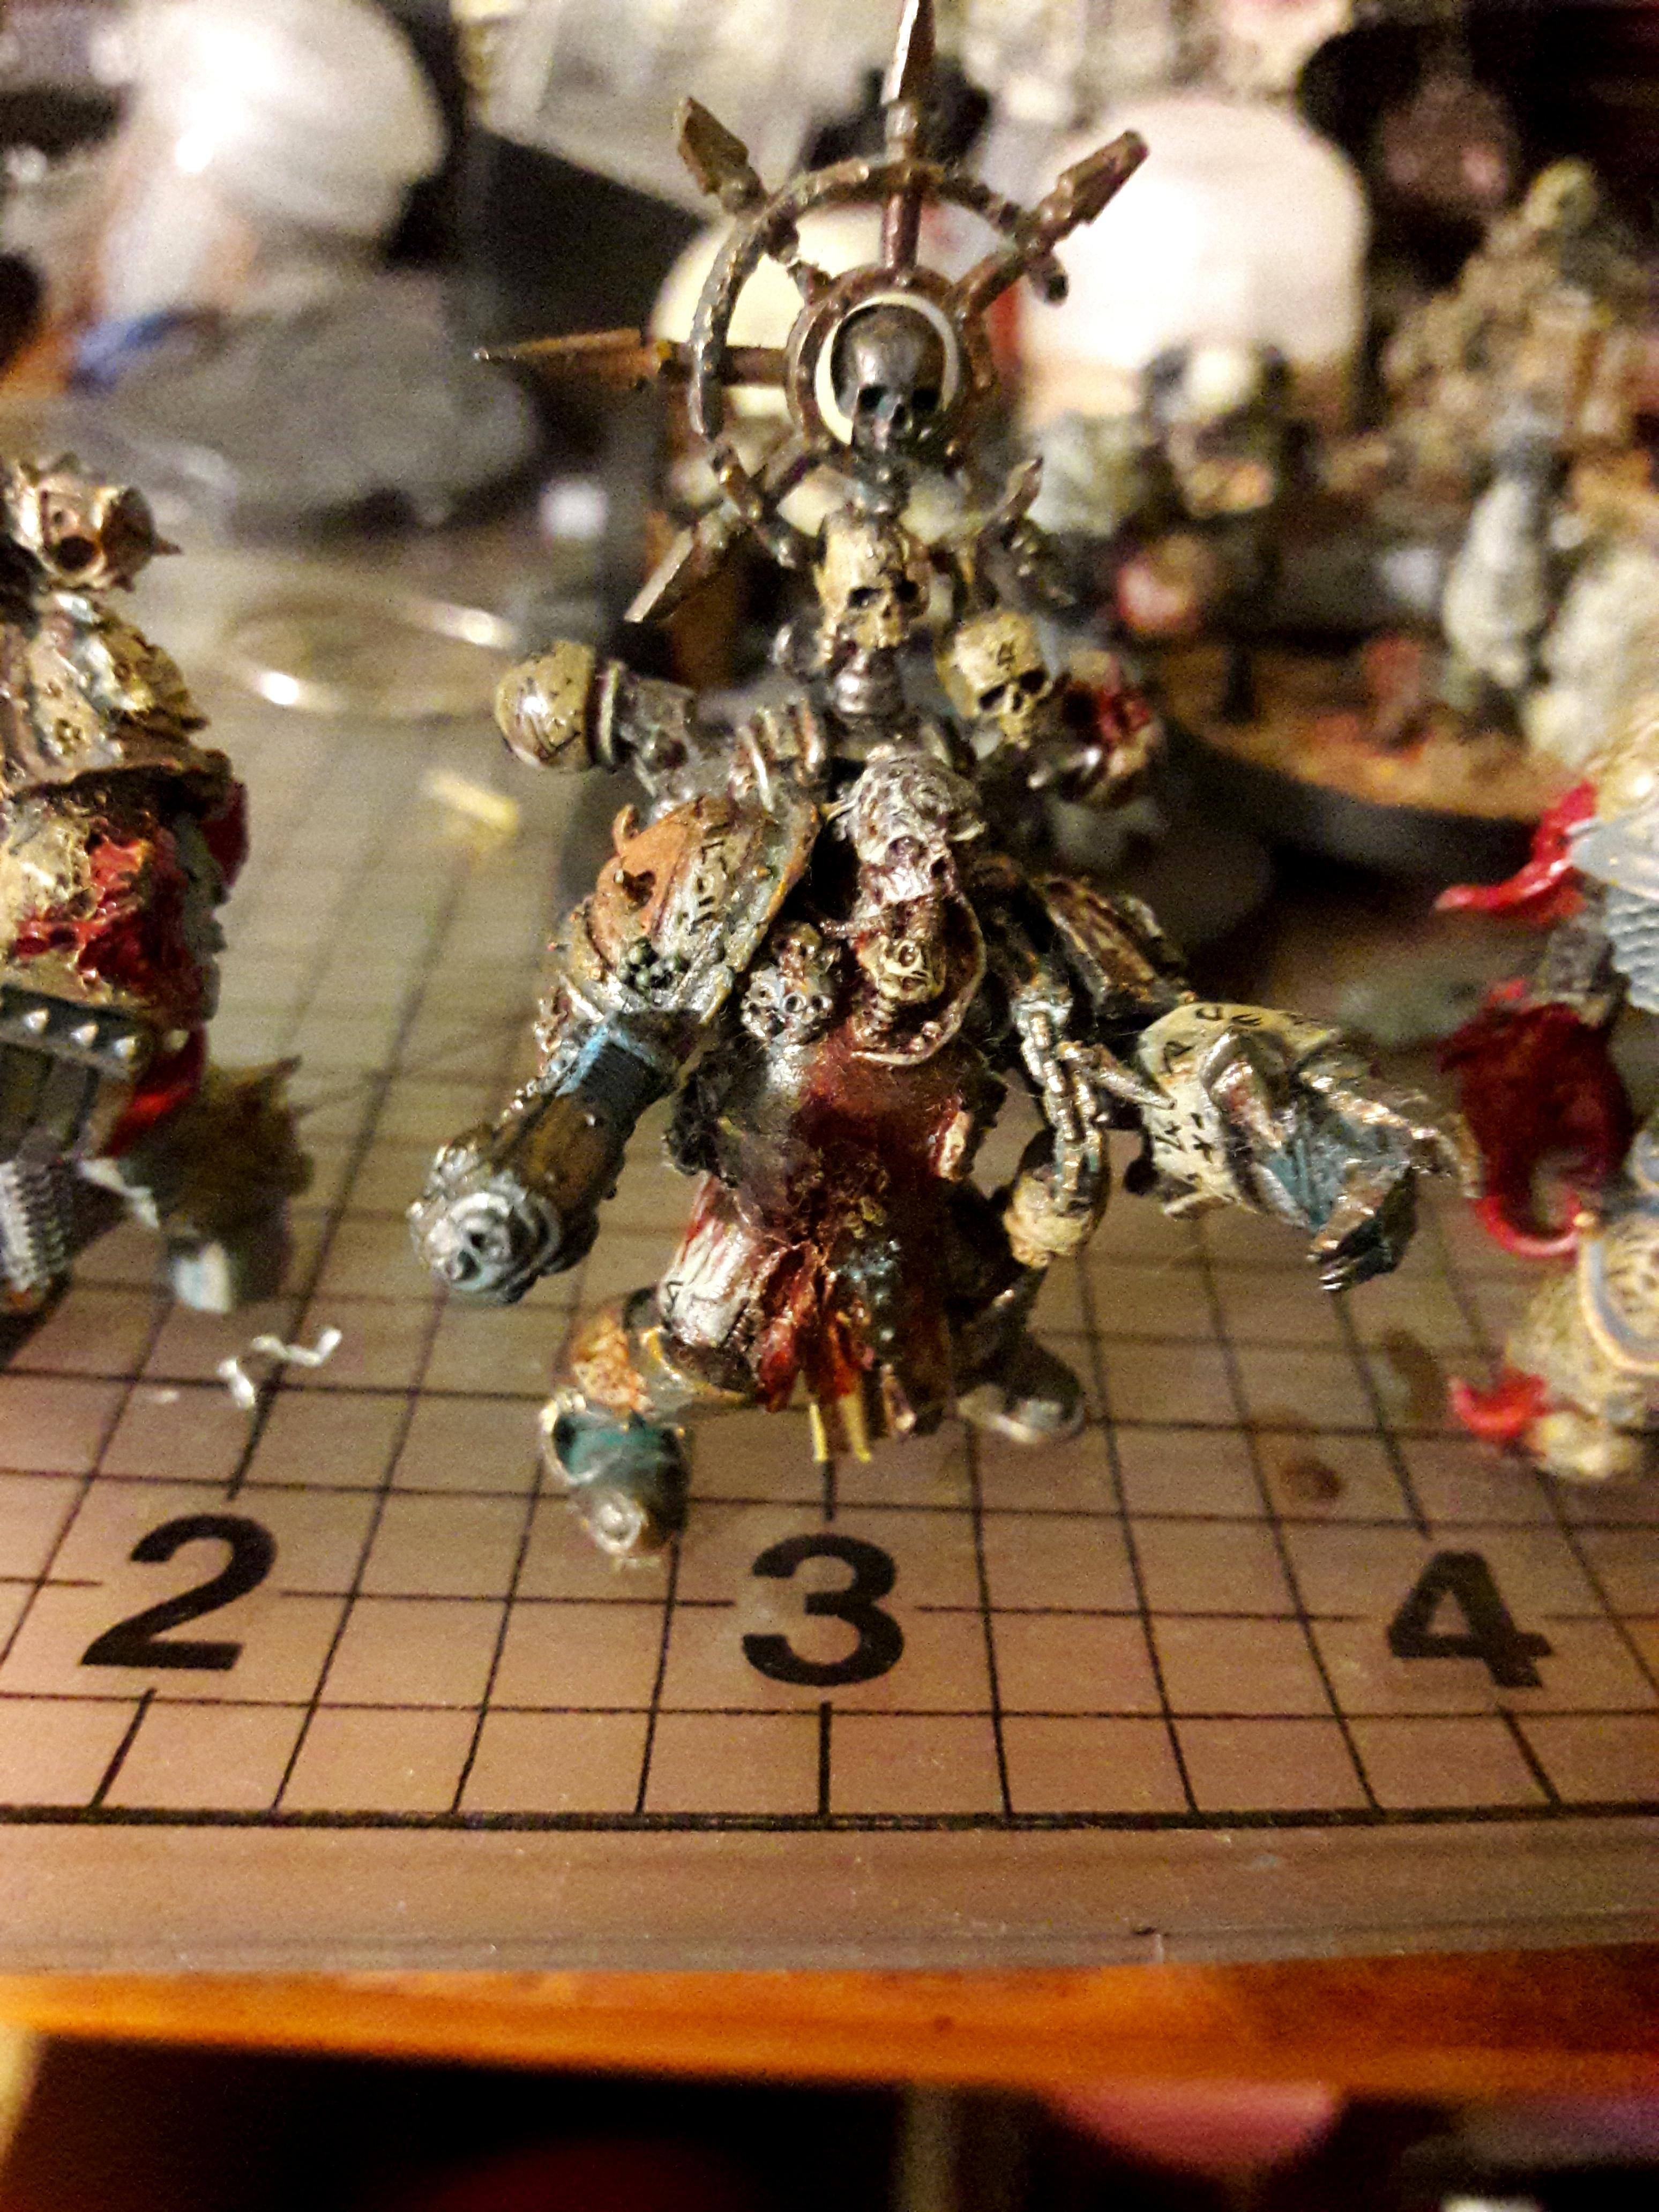 Chaos, Death Guard, Nurgle, The Tainted, Warhammer 40,000